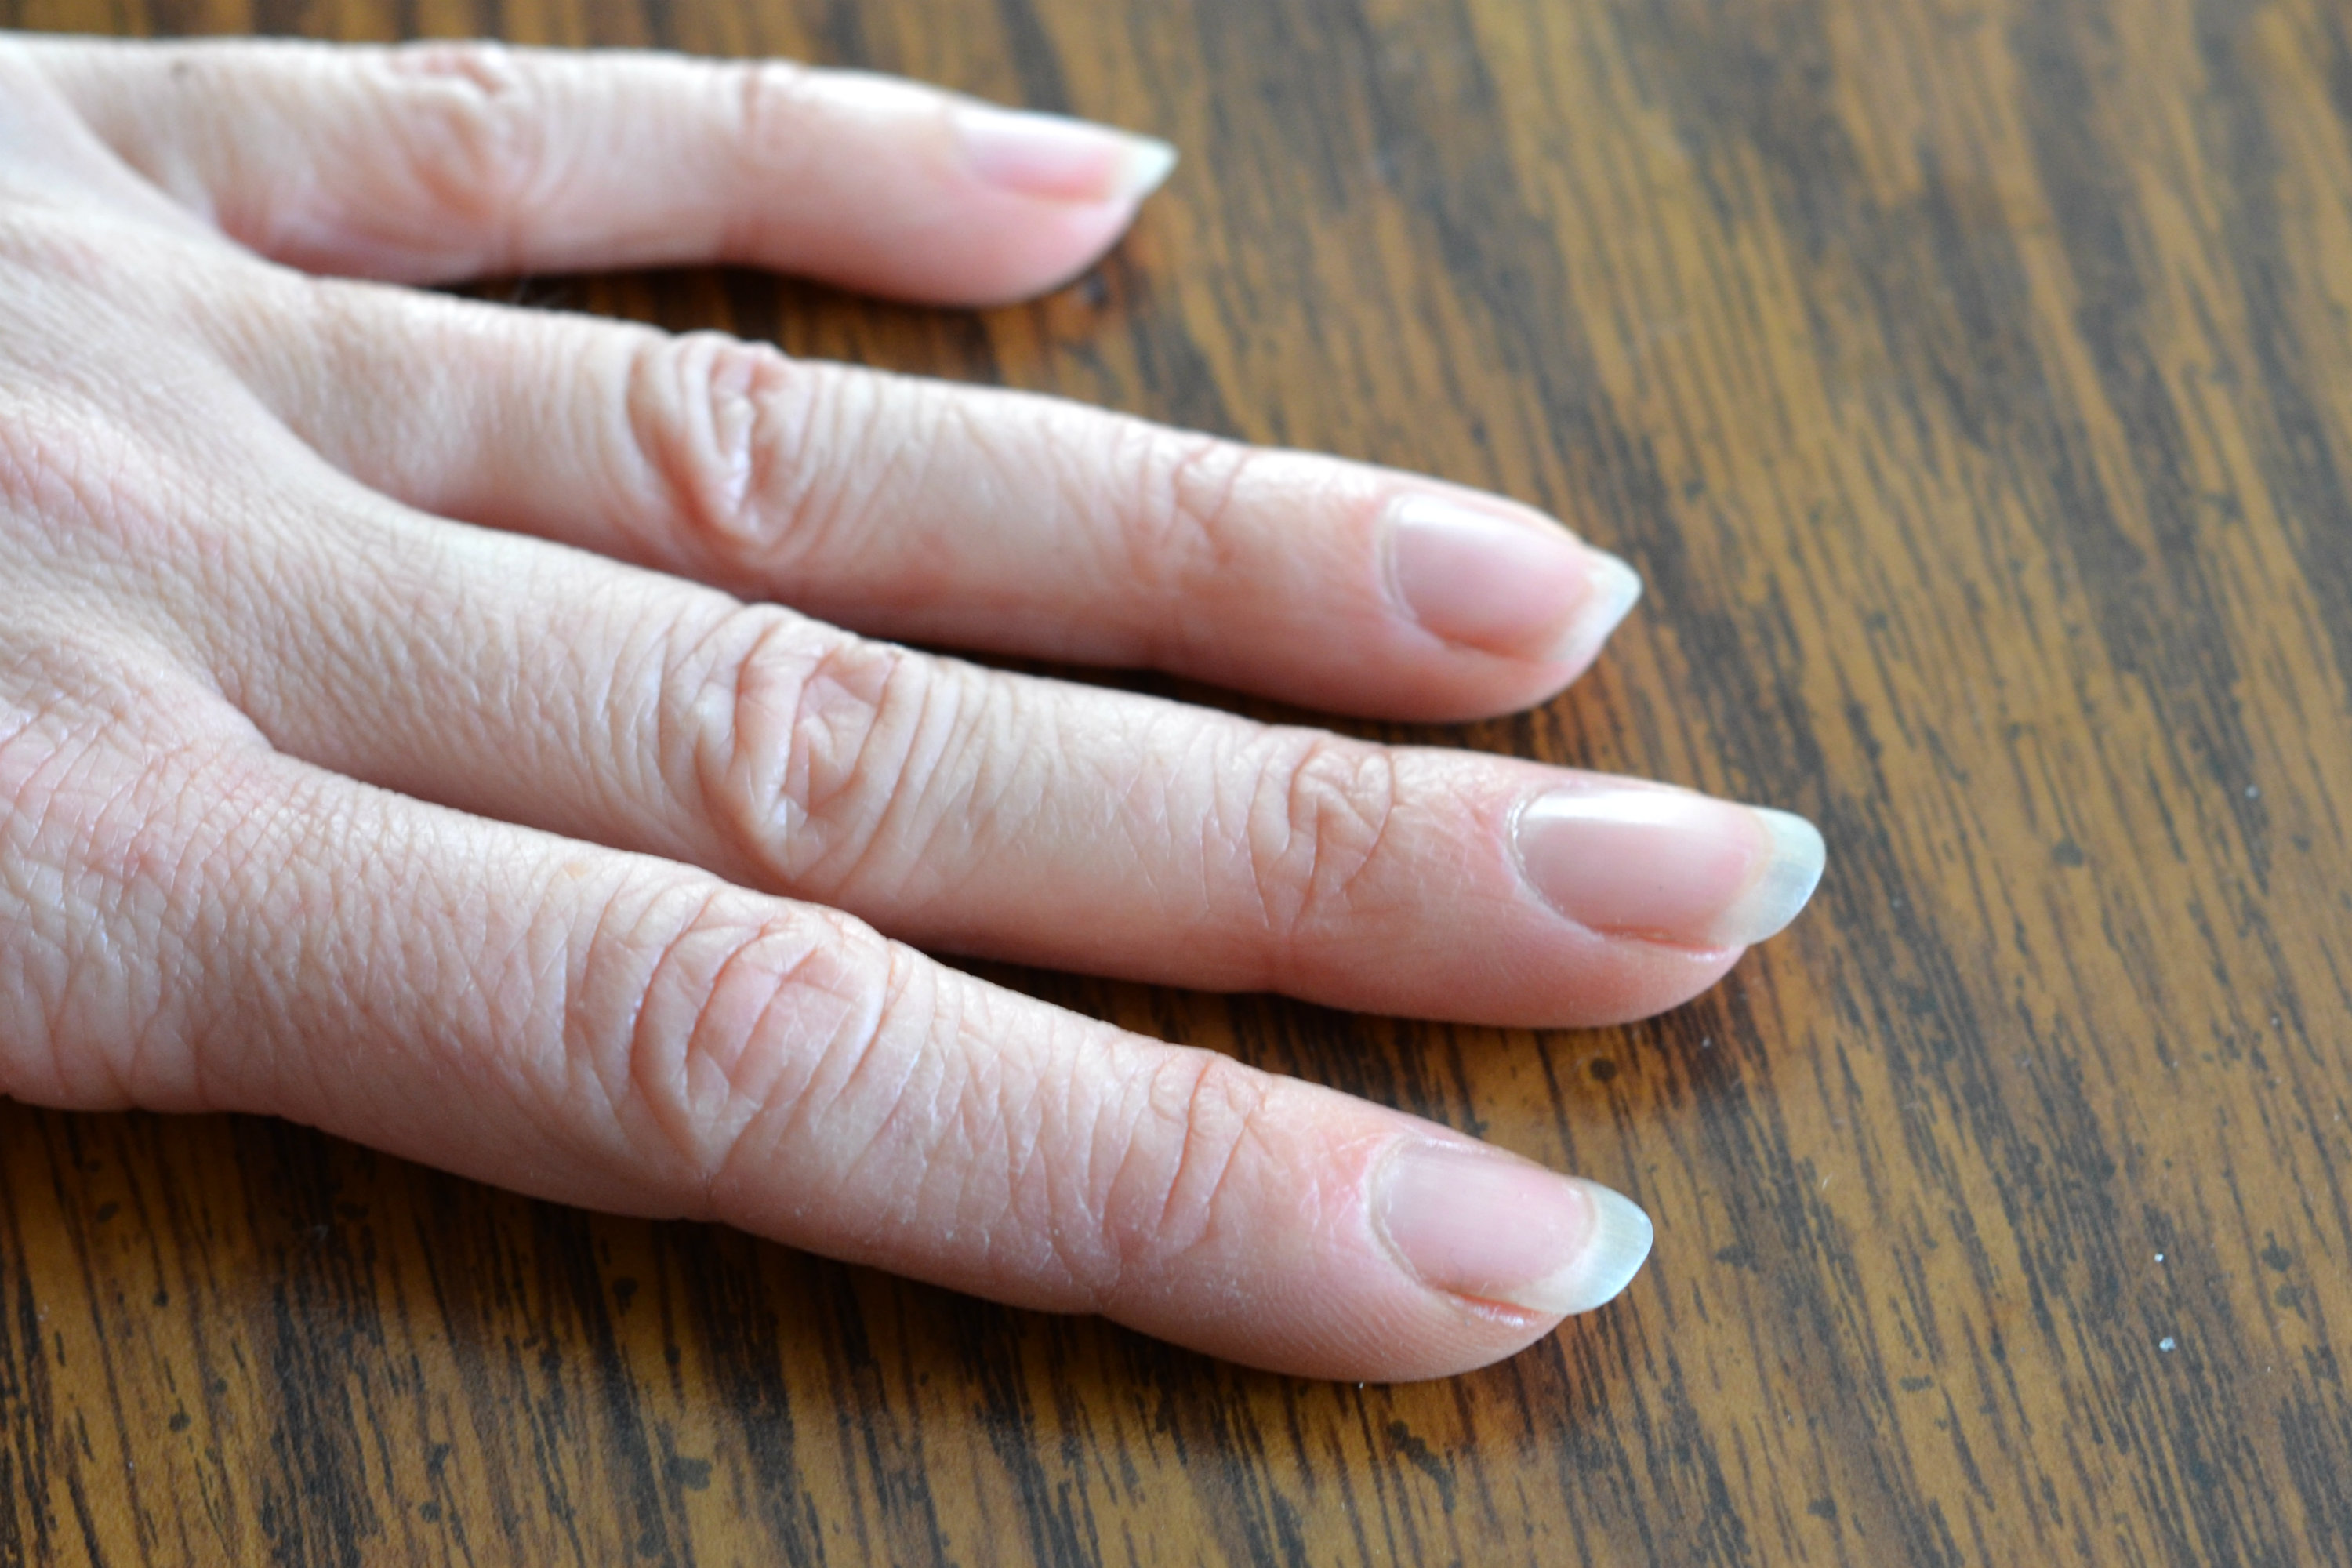 How to restore nails